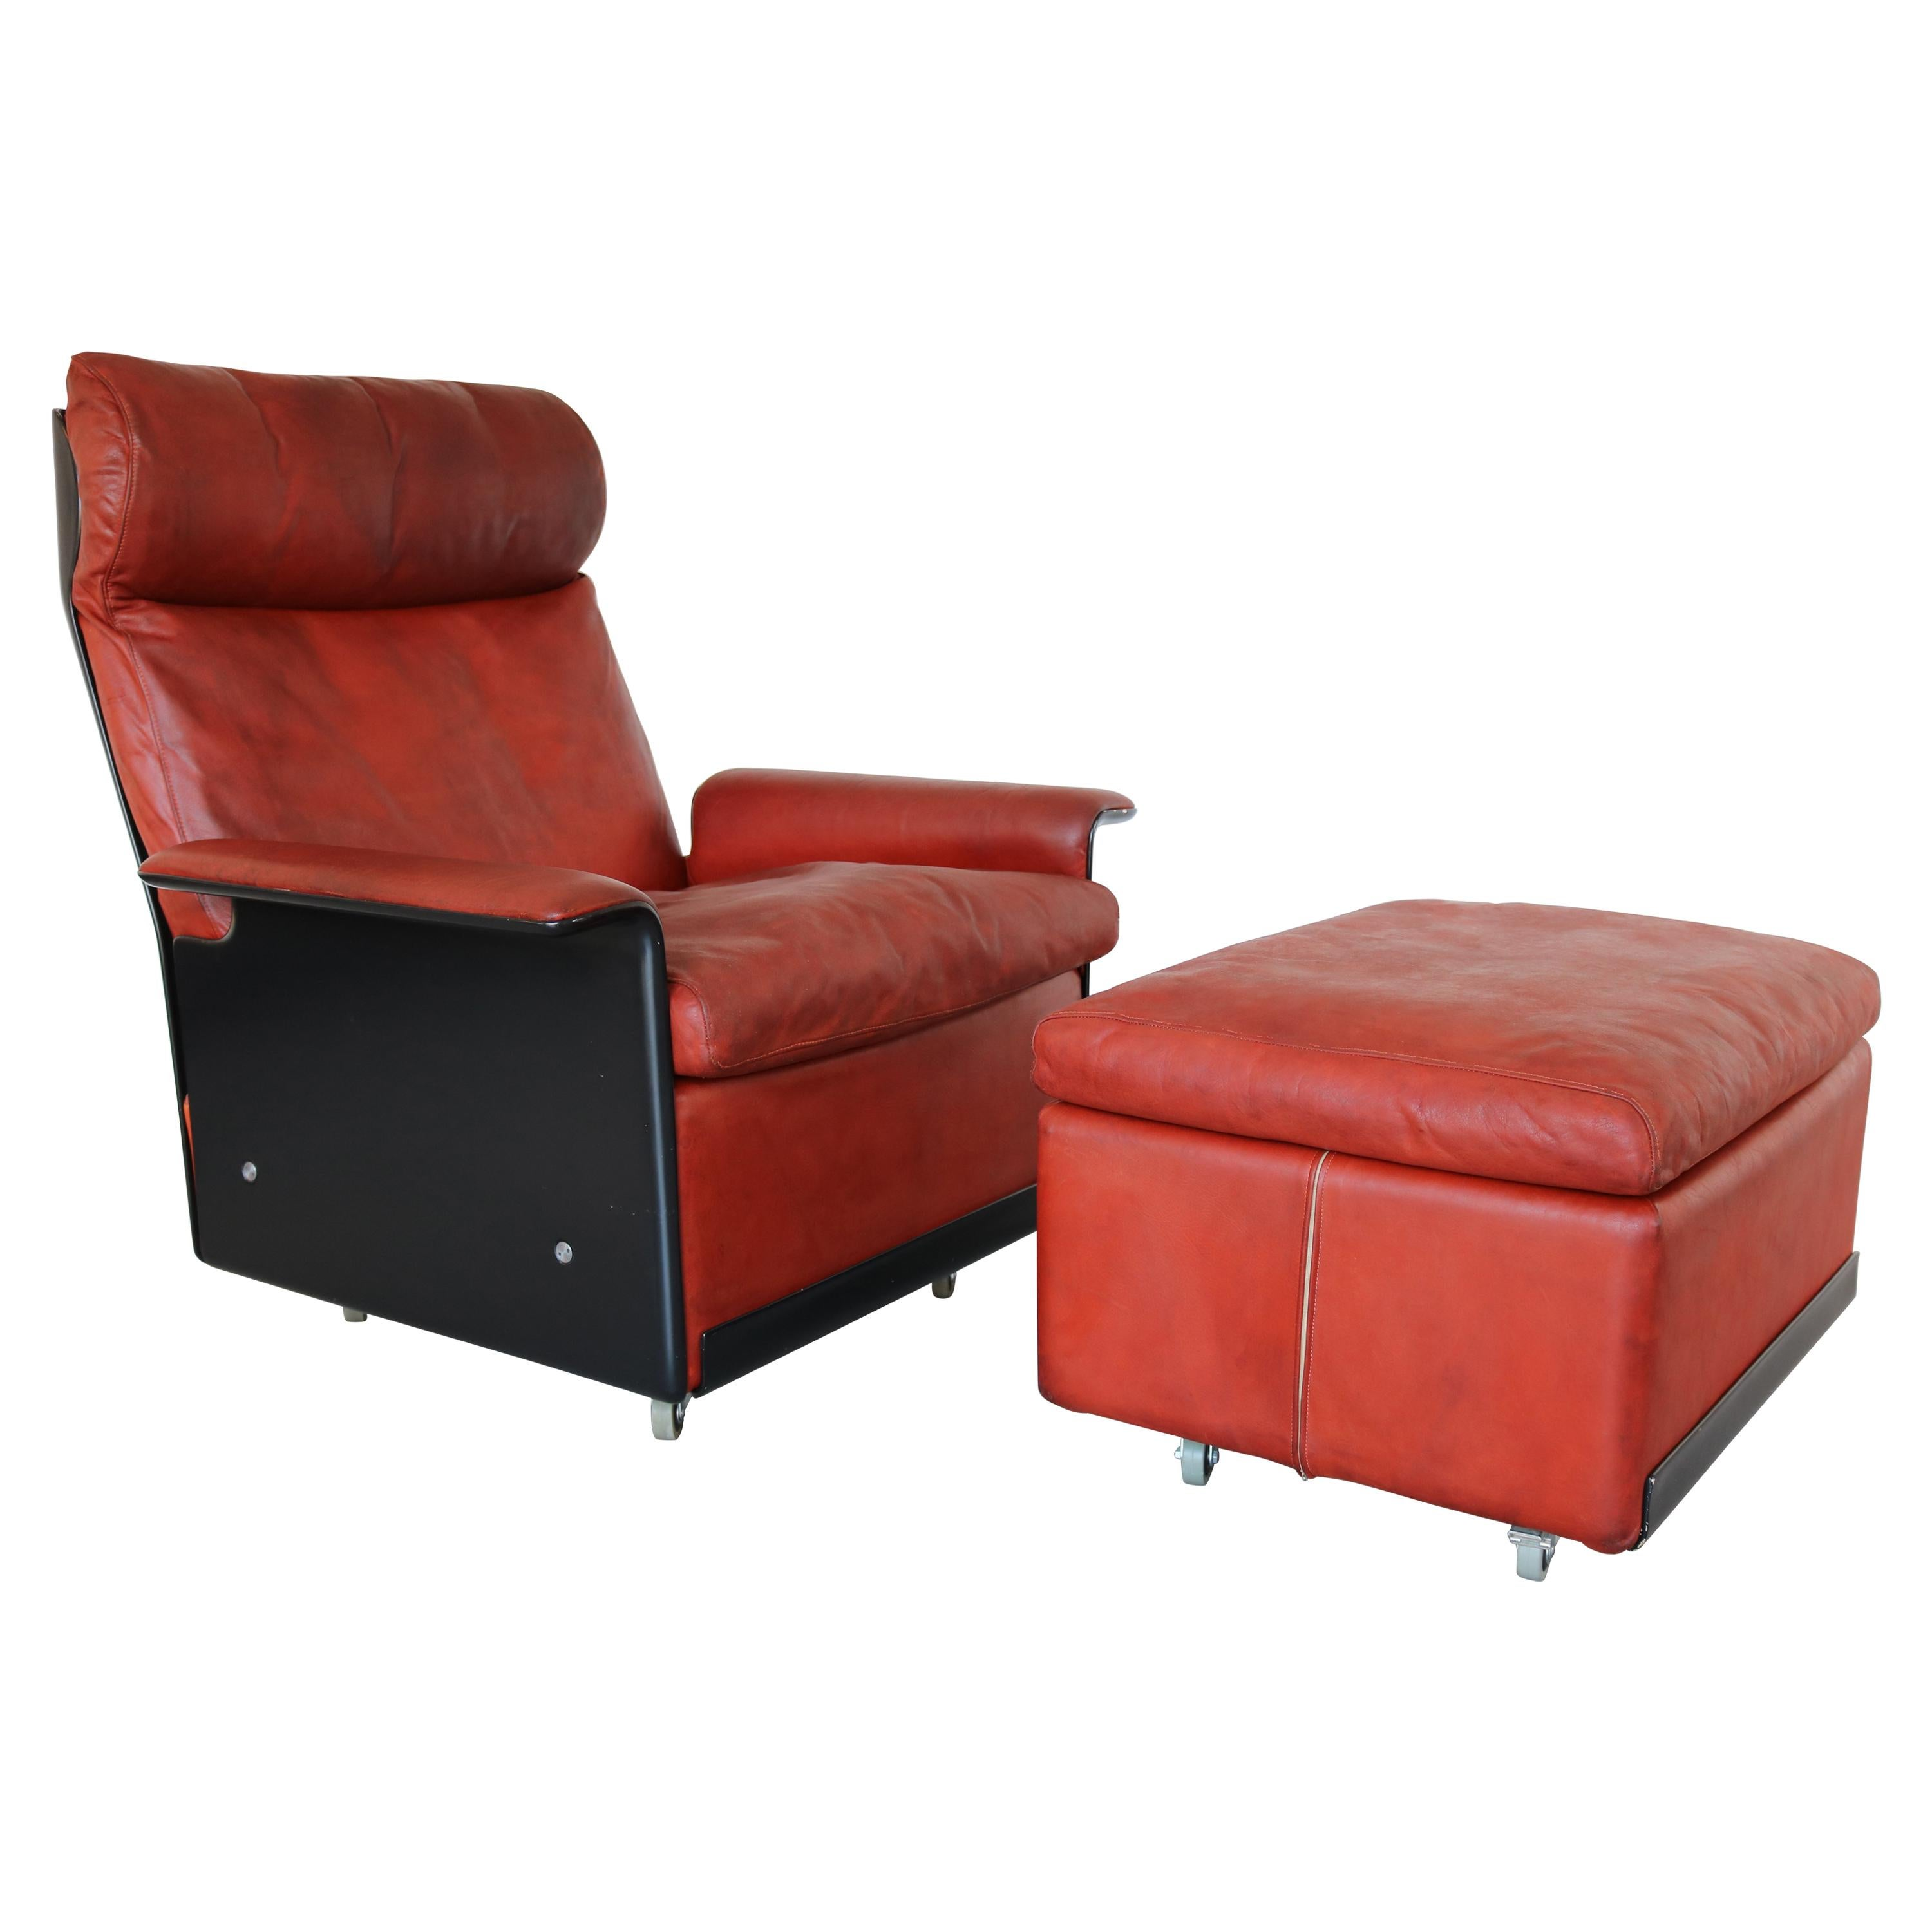 Gentil 620 High Back Leather Lounge Chair And Ottoman By Dieter Rams For Vitsoe,  1960s For